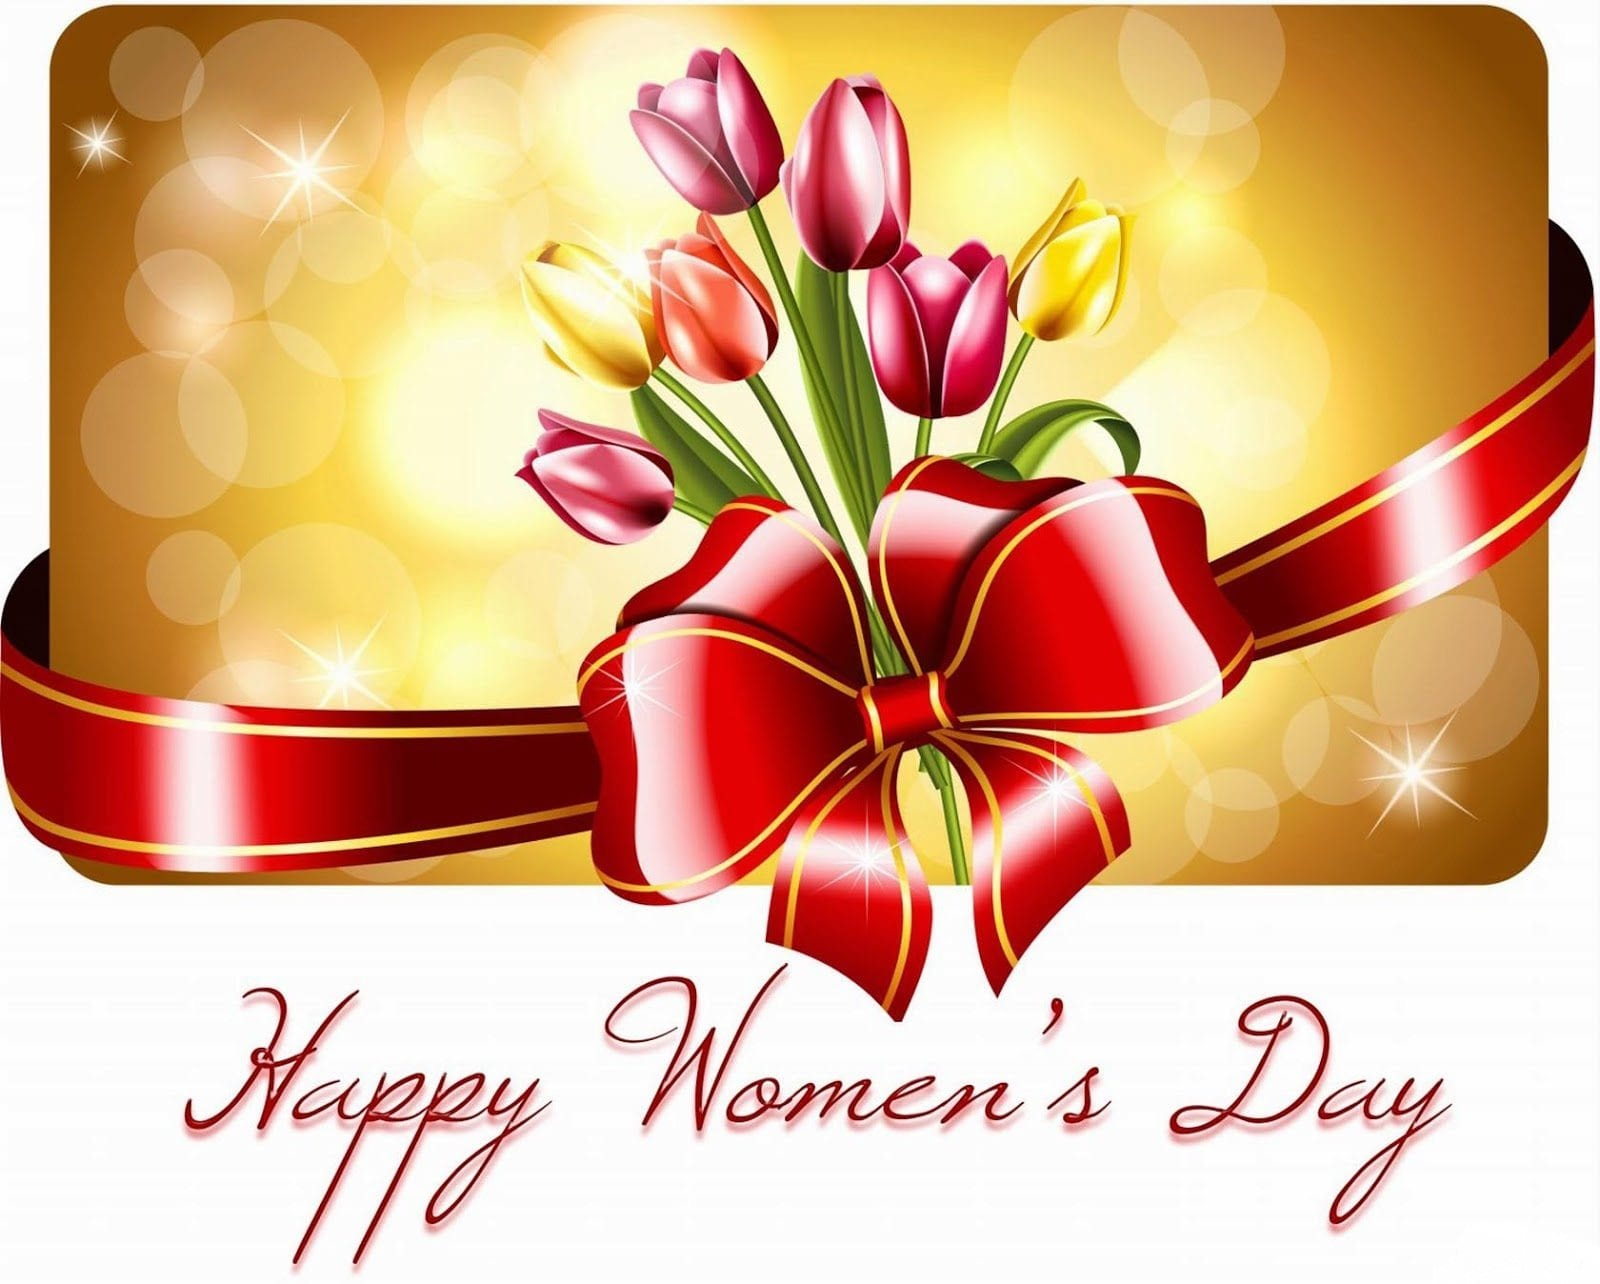 International Women's Day 2014 Greeting Photos Gallery & HD Wallpapers